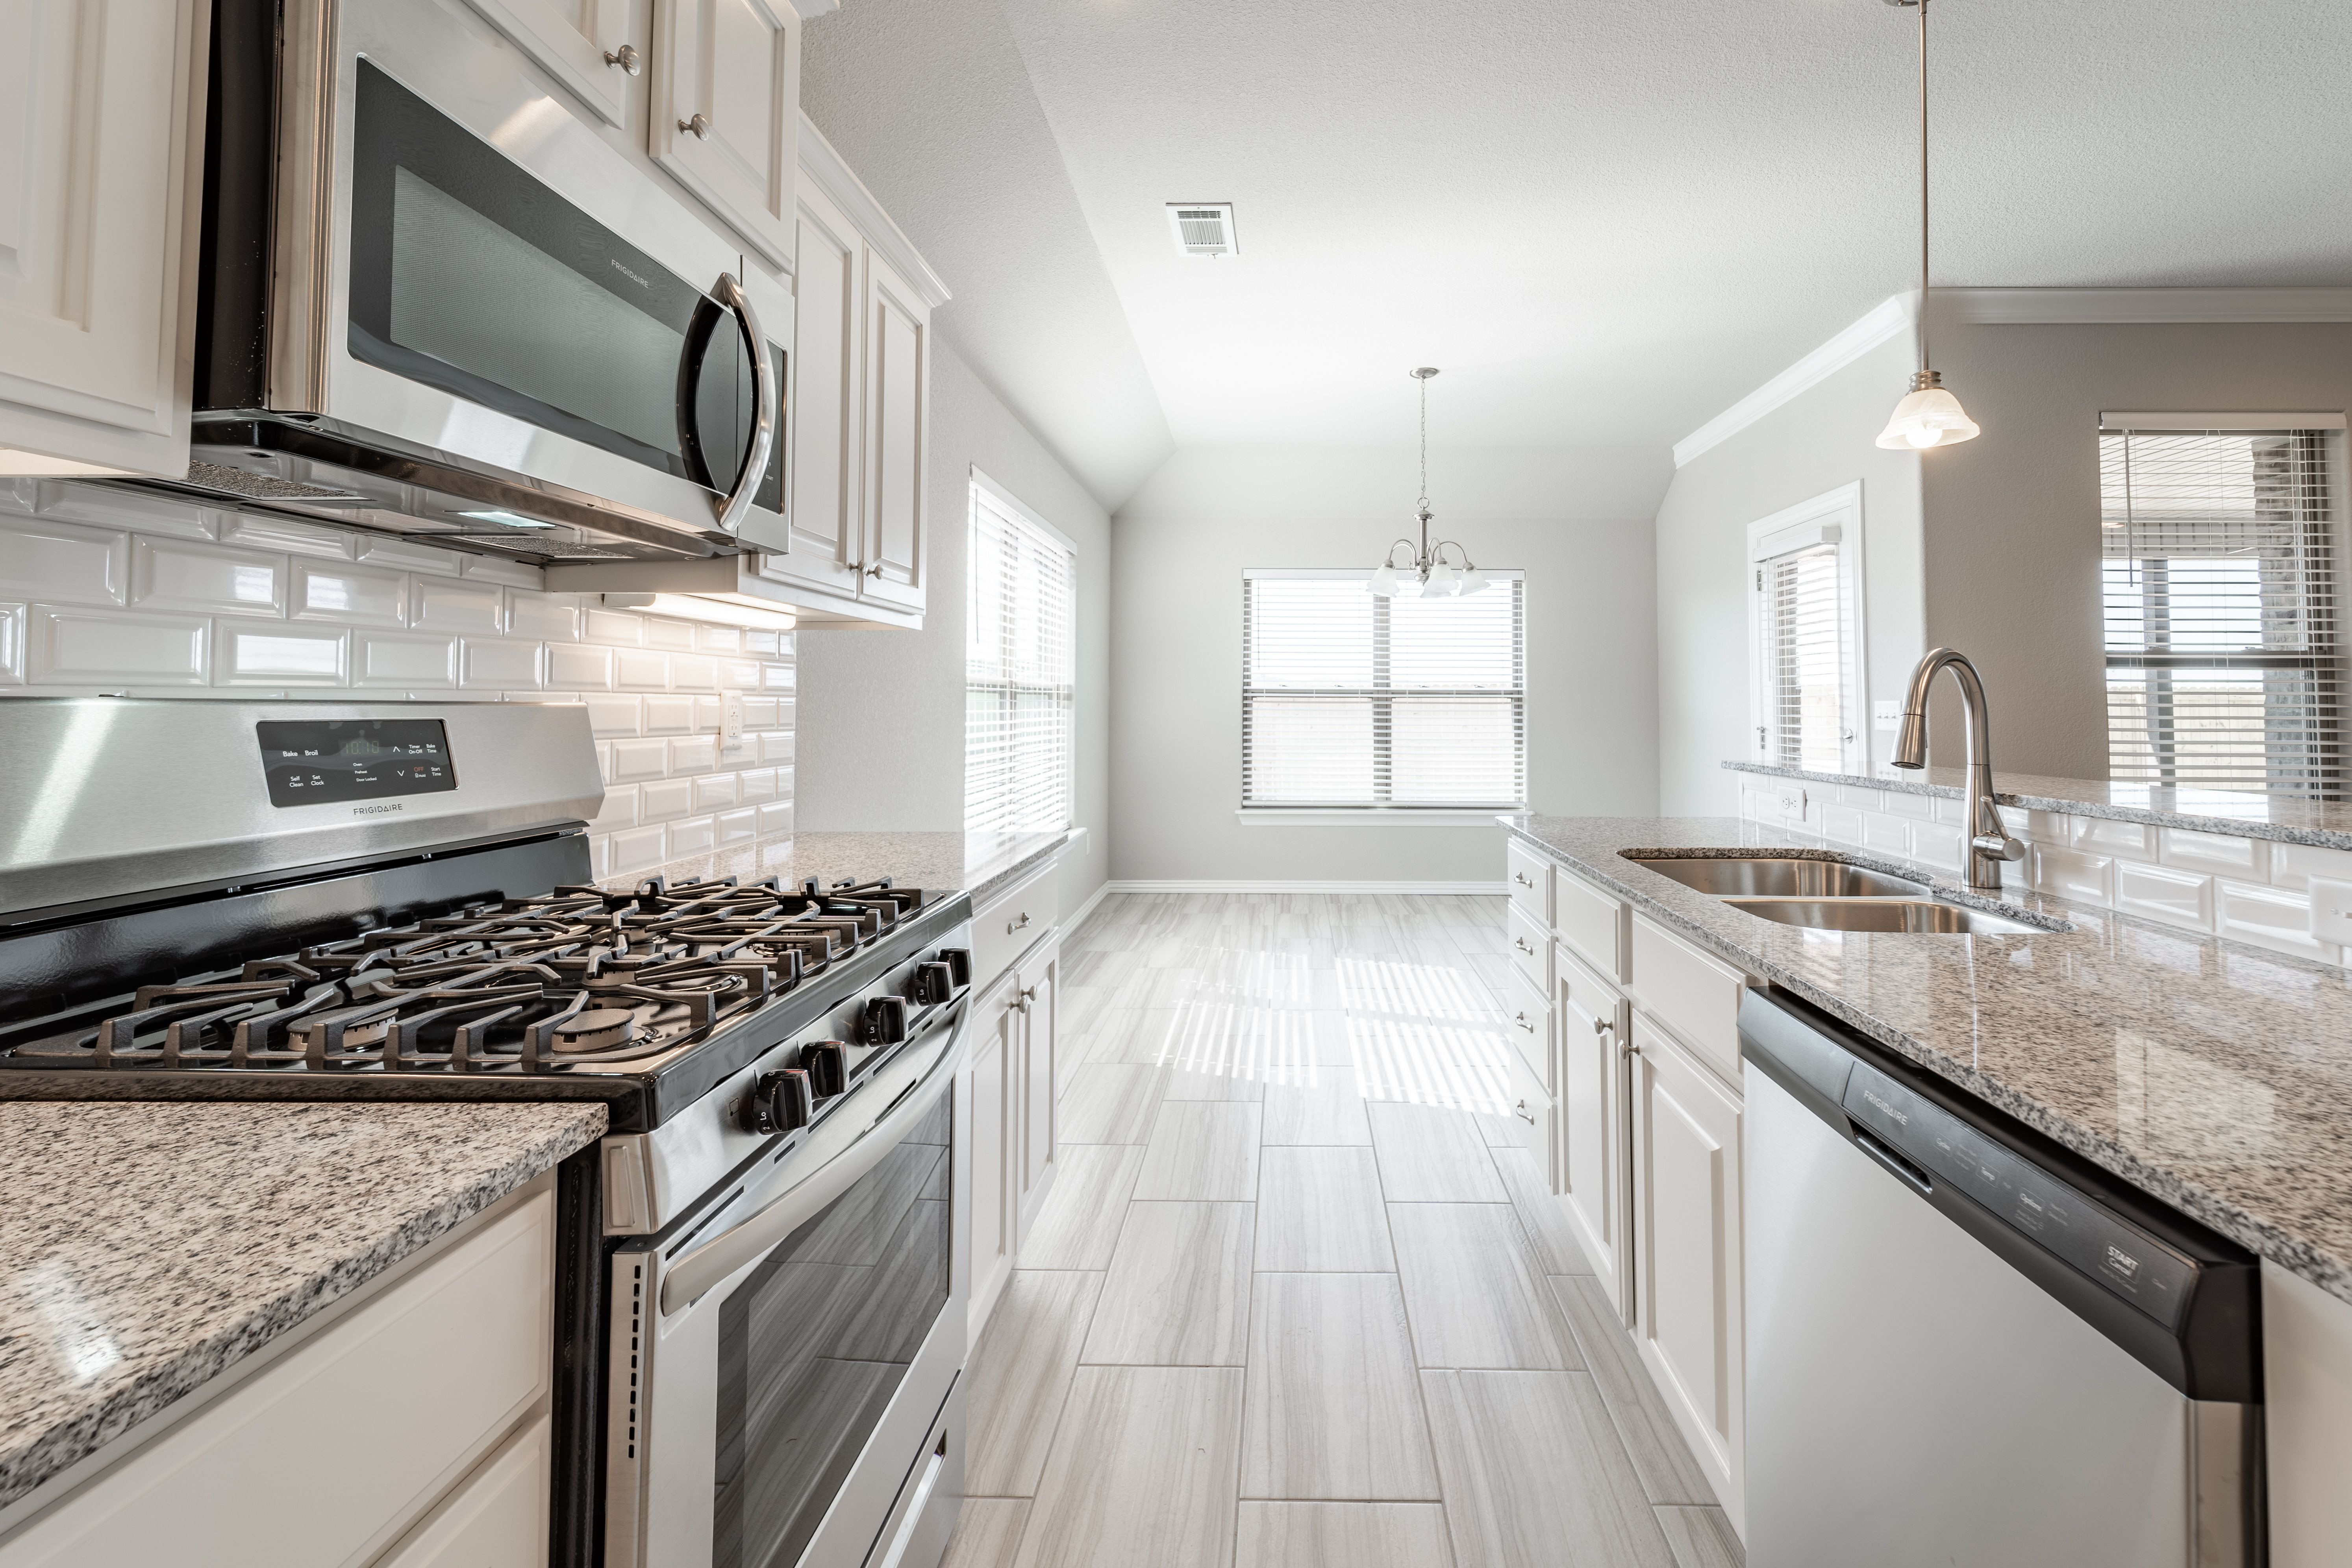 Kitchen featured in the Hamilton 1787 By Riverwood Homes - Arkansas in Fayetteville, AR